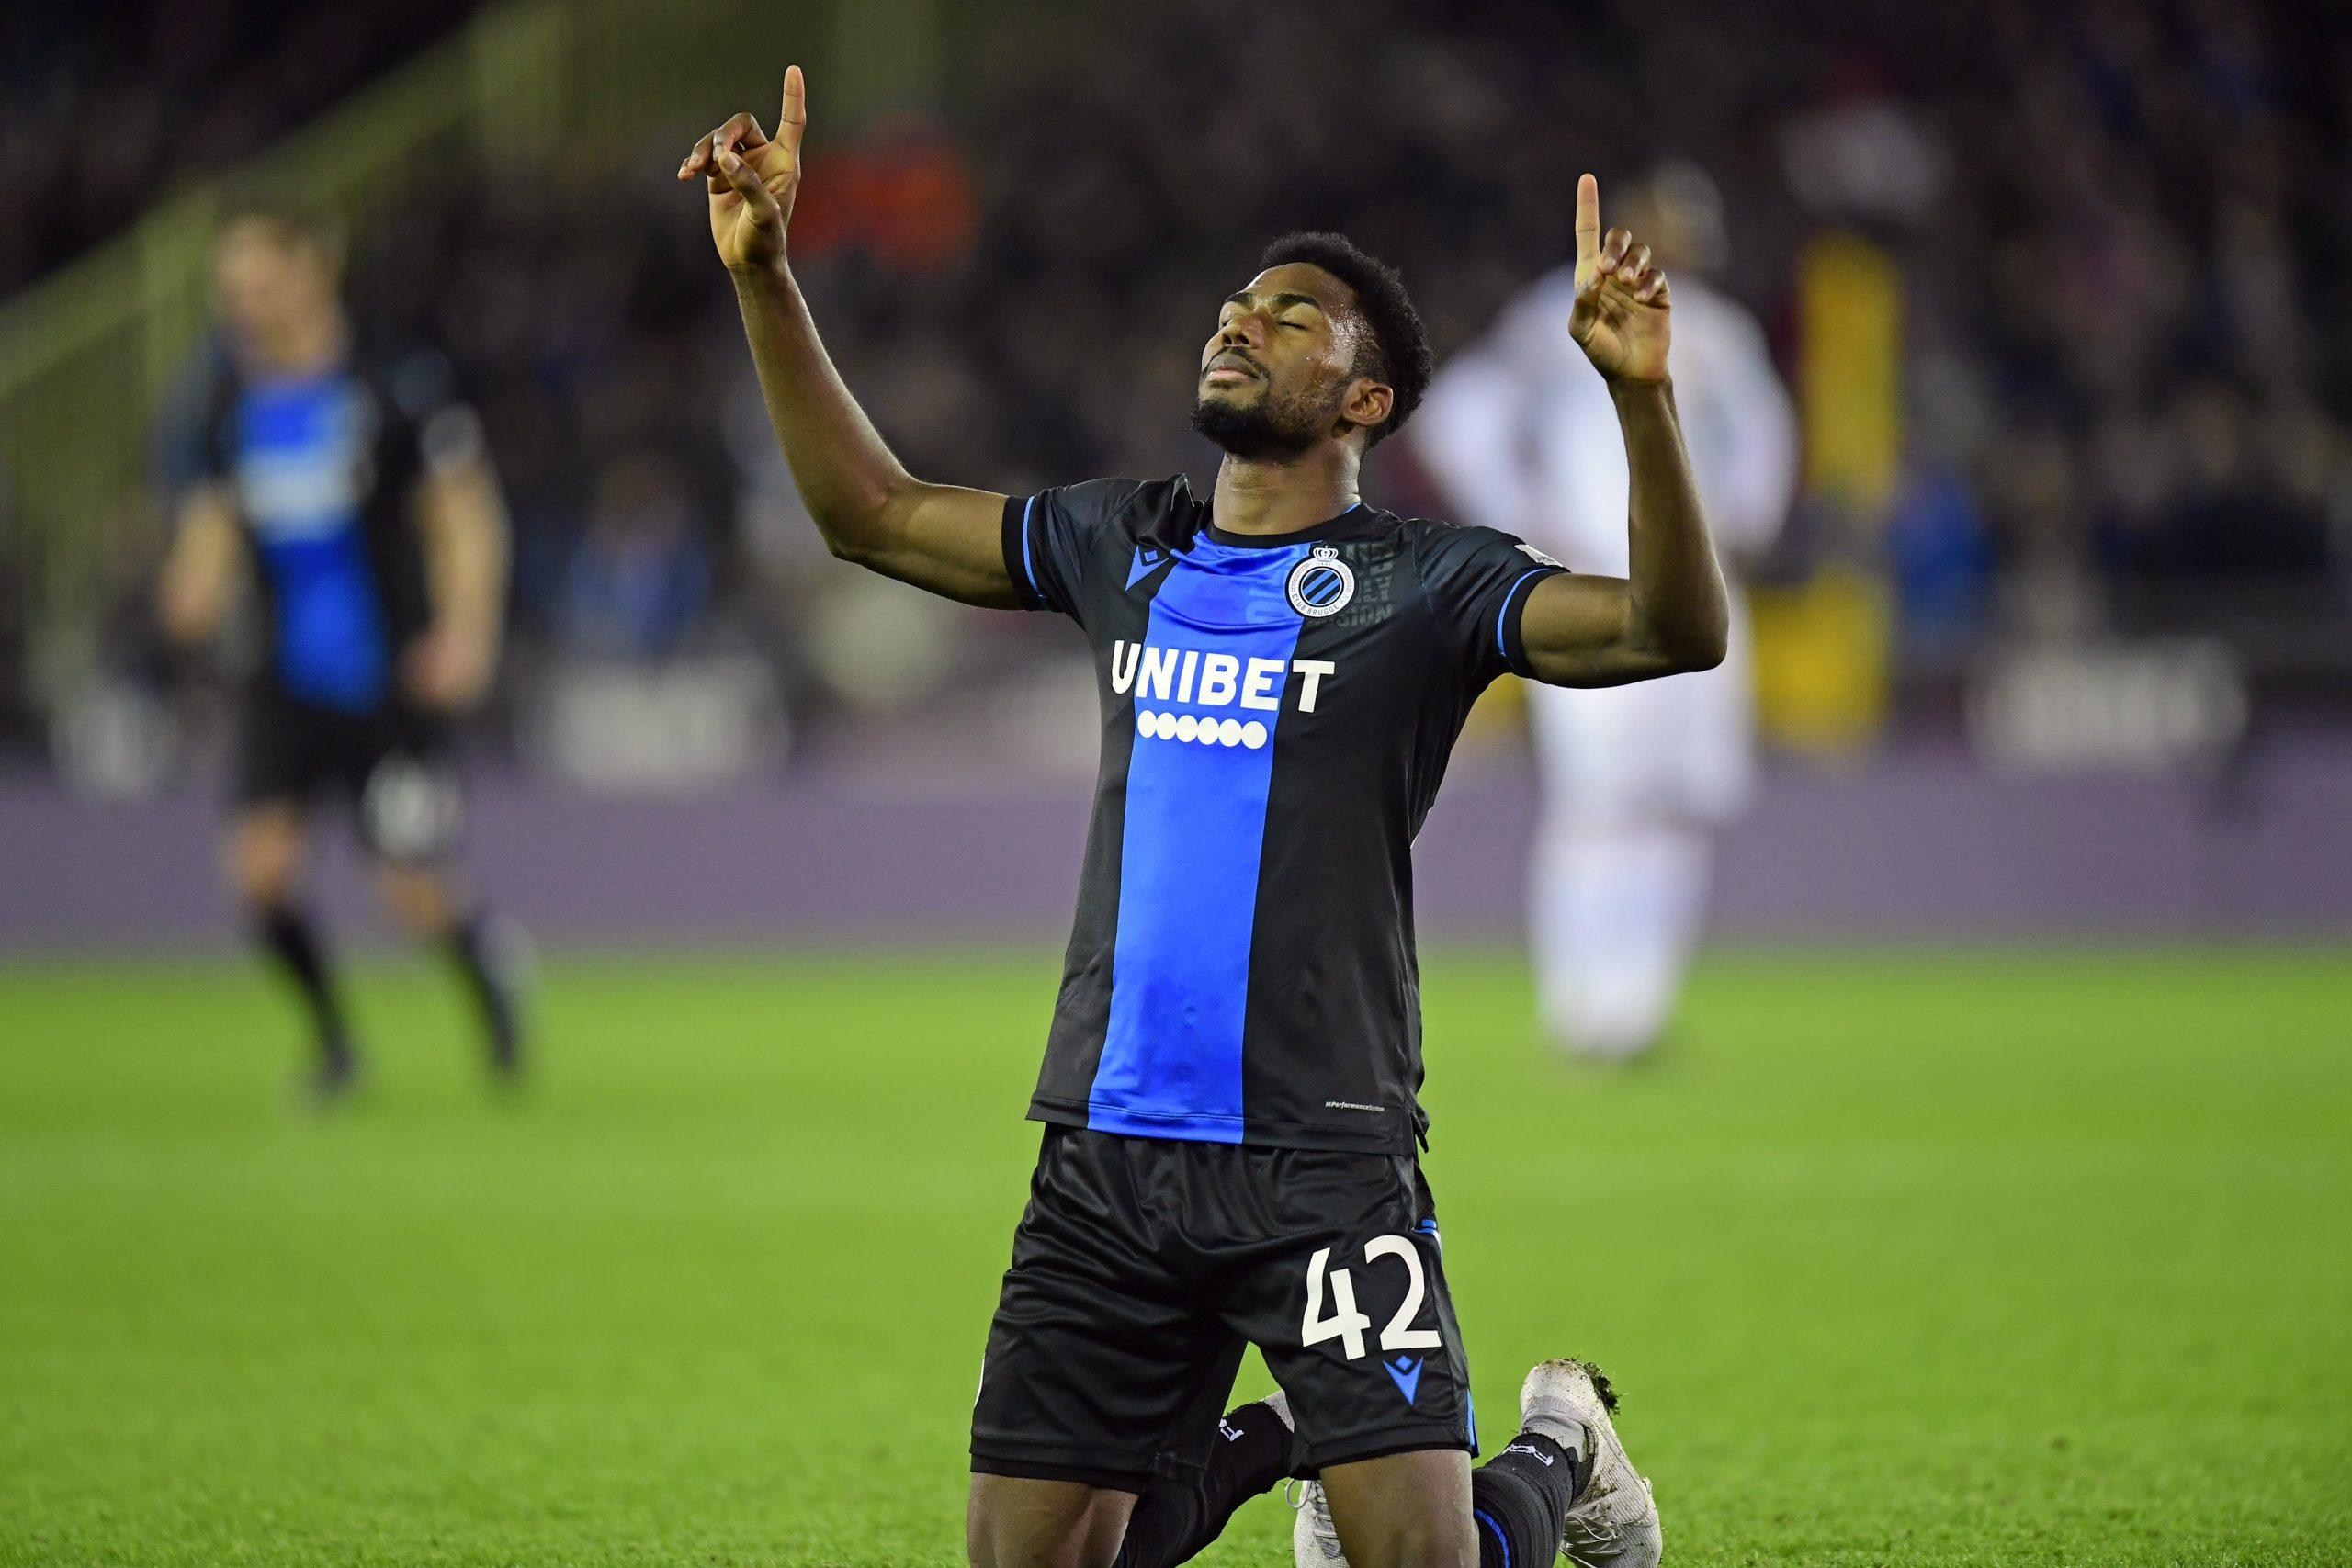 Dennis Nominated For Club Brugge's August Player Of The Month Award